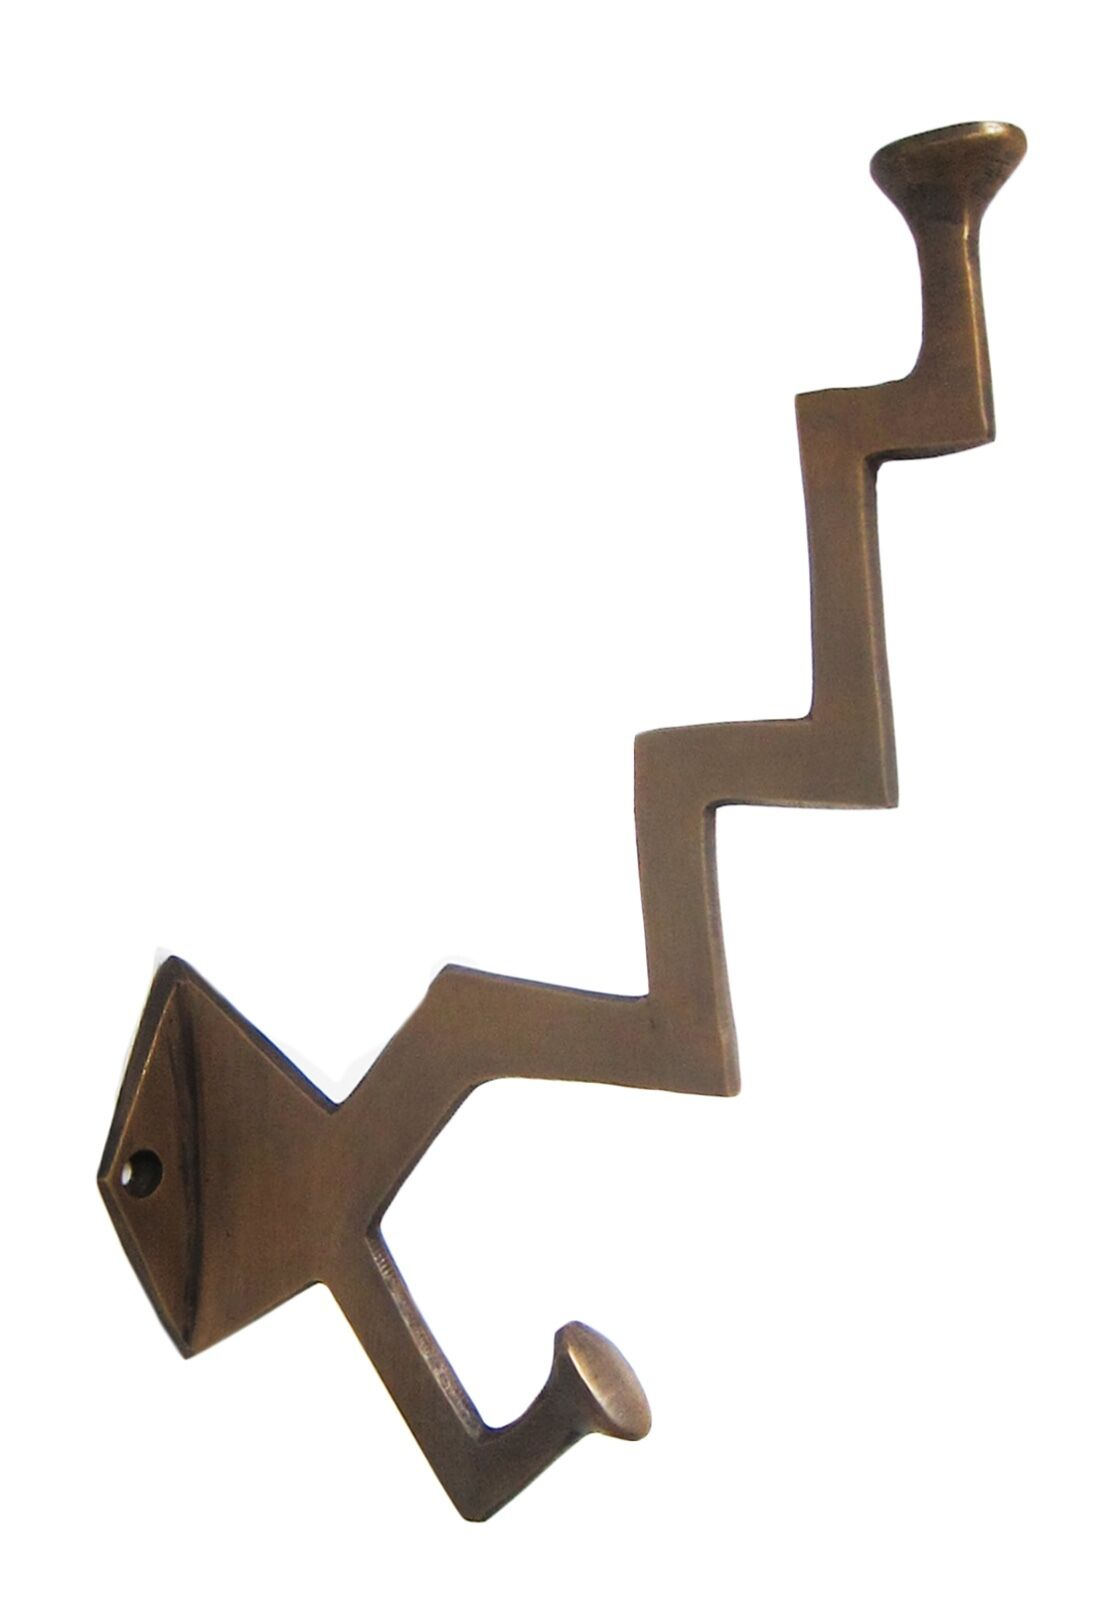 Solid Brass wall door hook for coats hats,zig-zag shape 20 cm screws provided